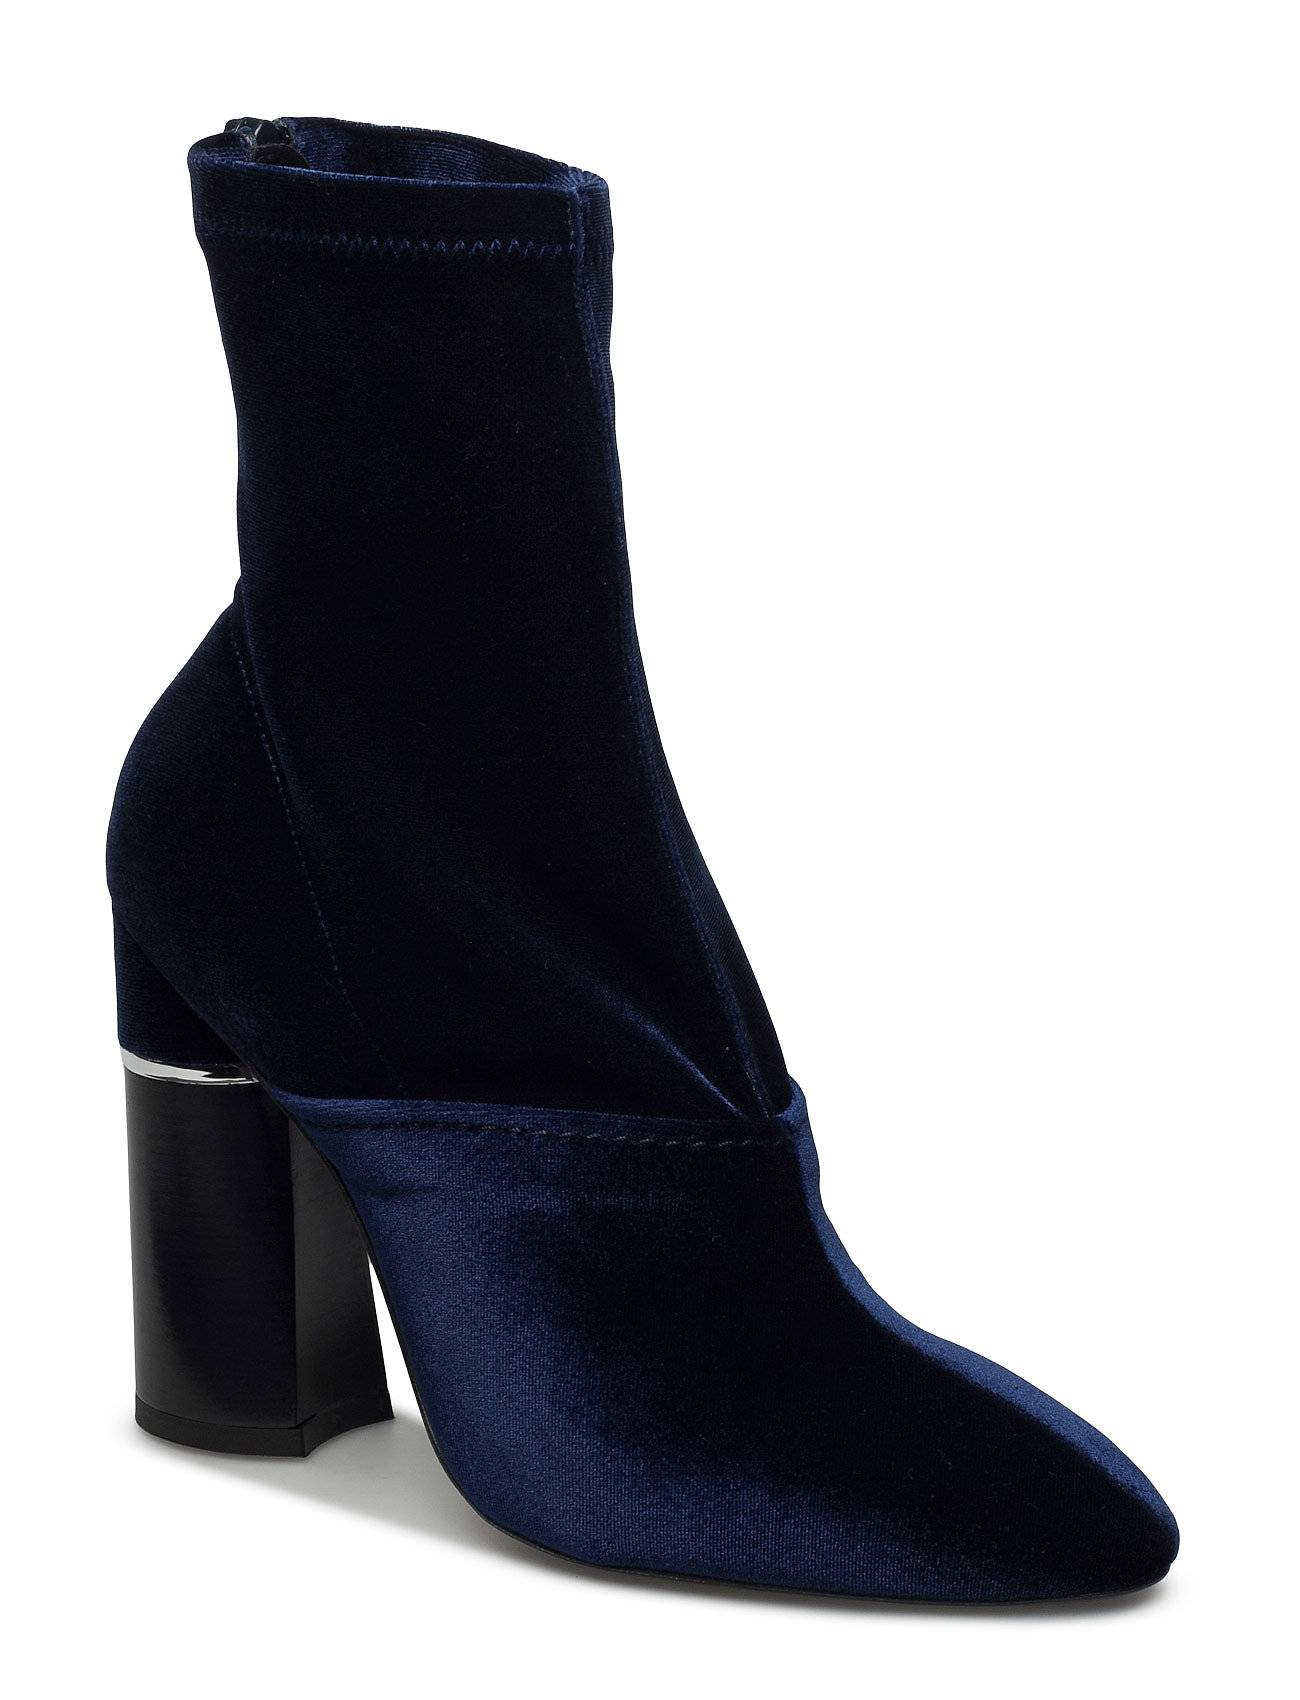 3.1 Phillip Lim Kyoto - 105mm Stretch Boot With Heel Insert